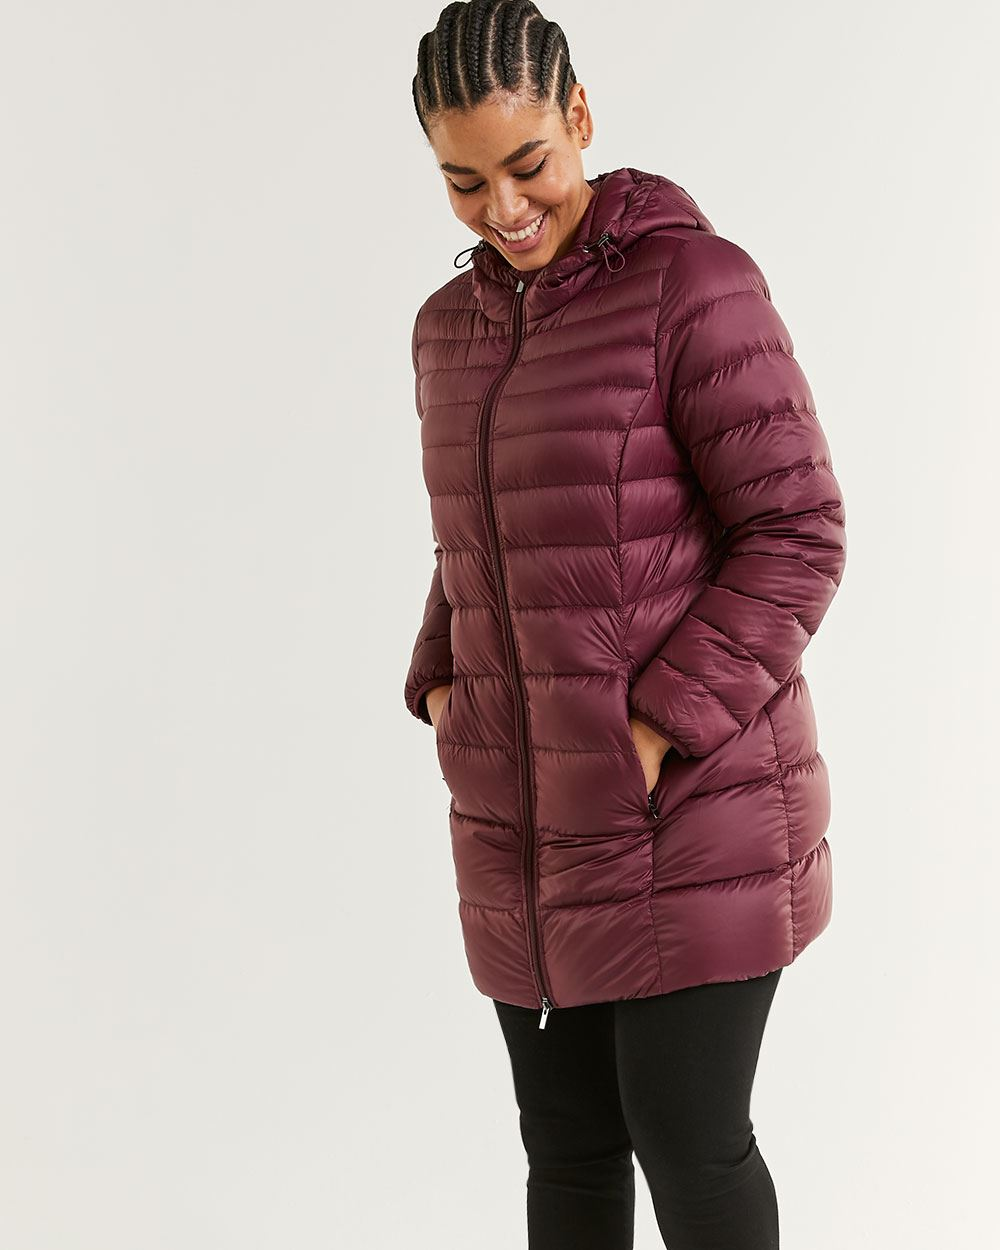 Long Lightweight Packable Down Jacket